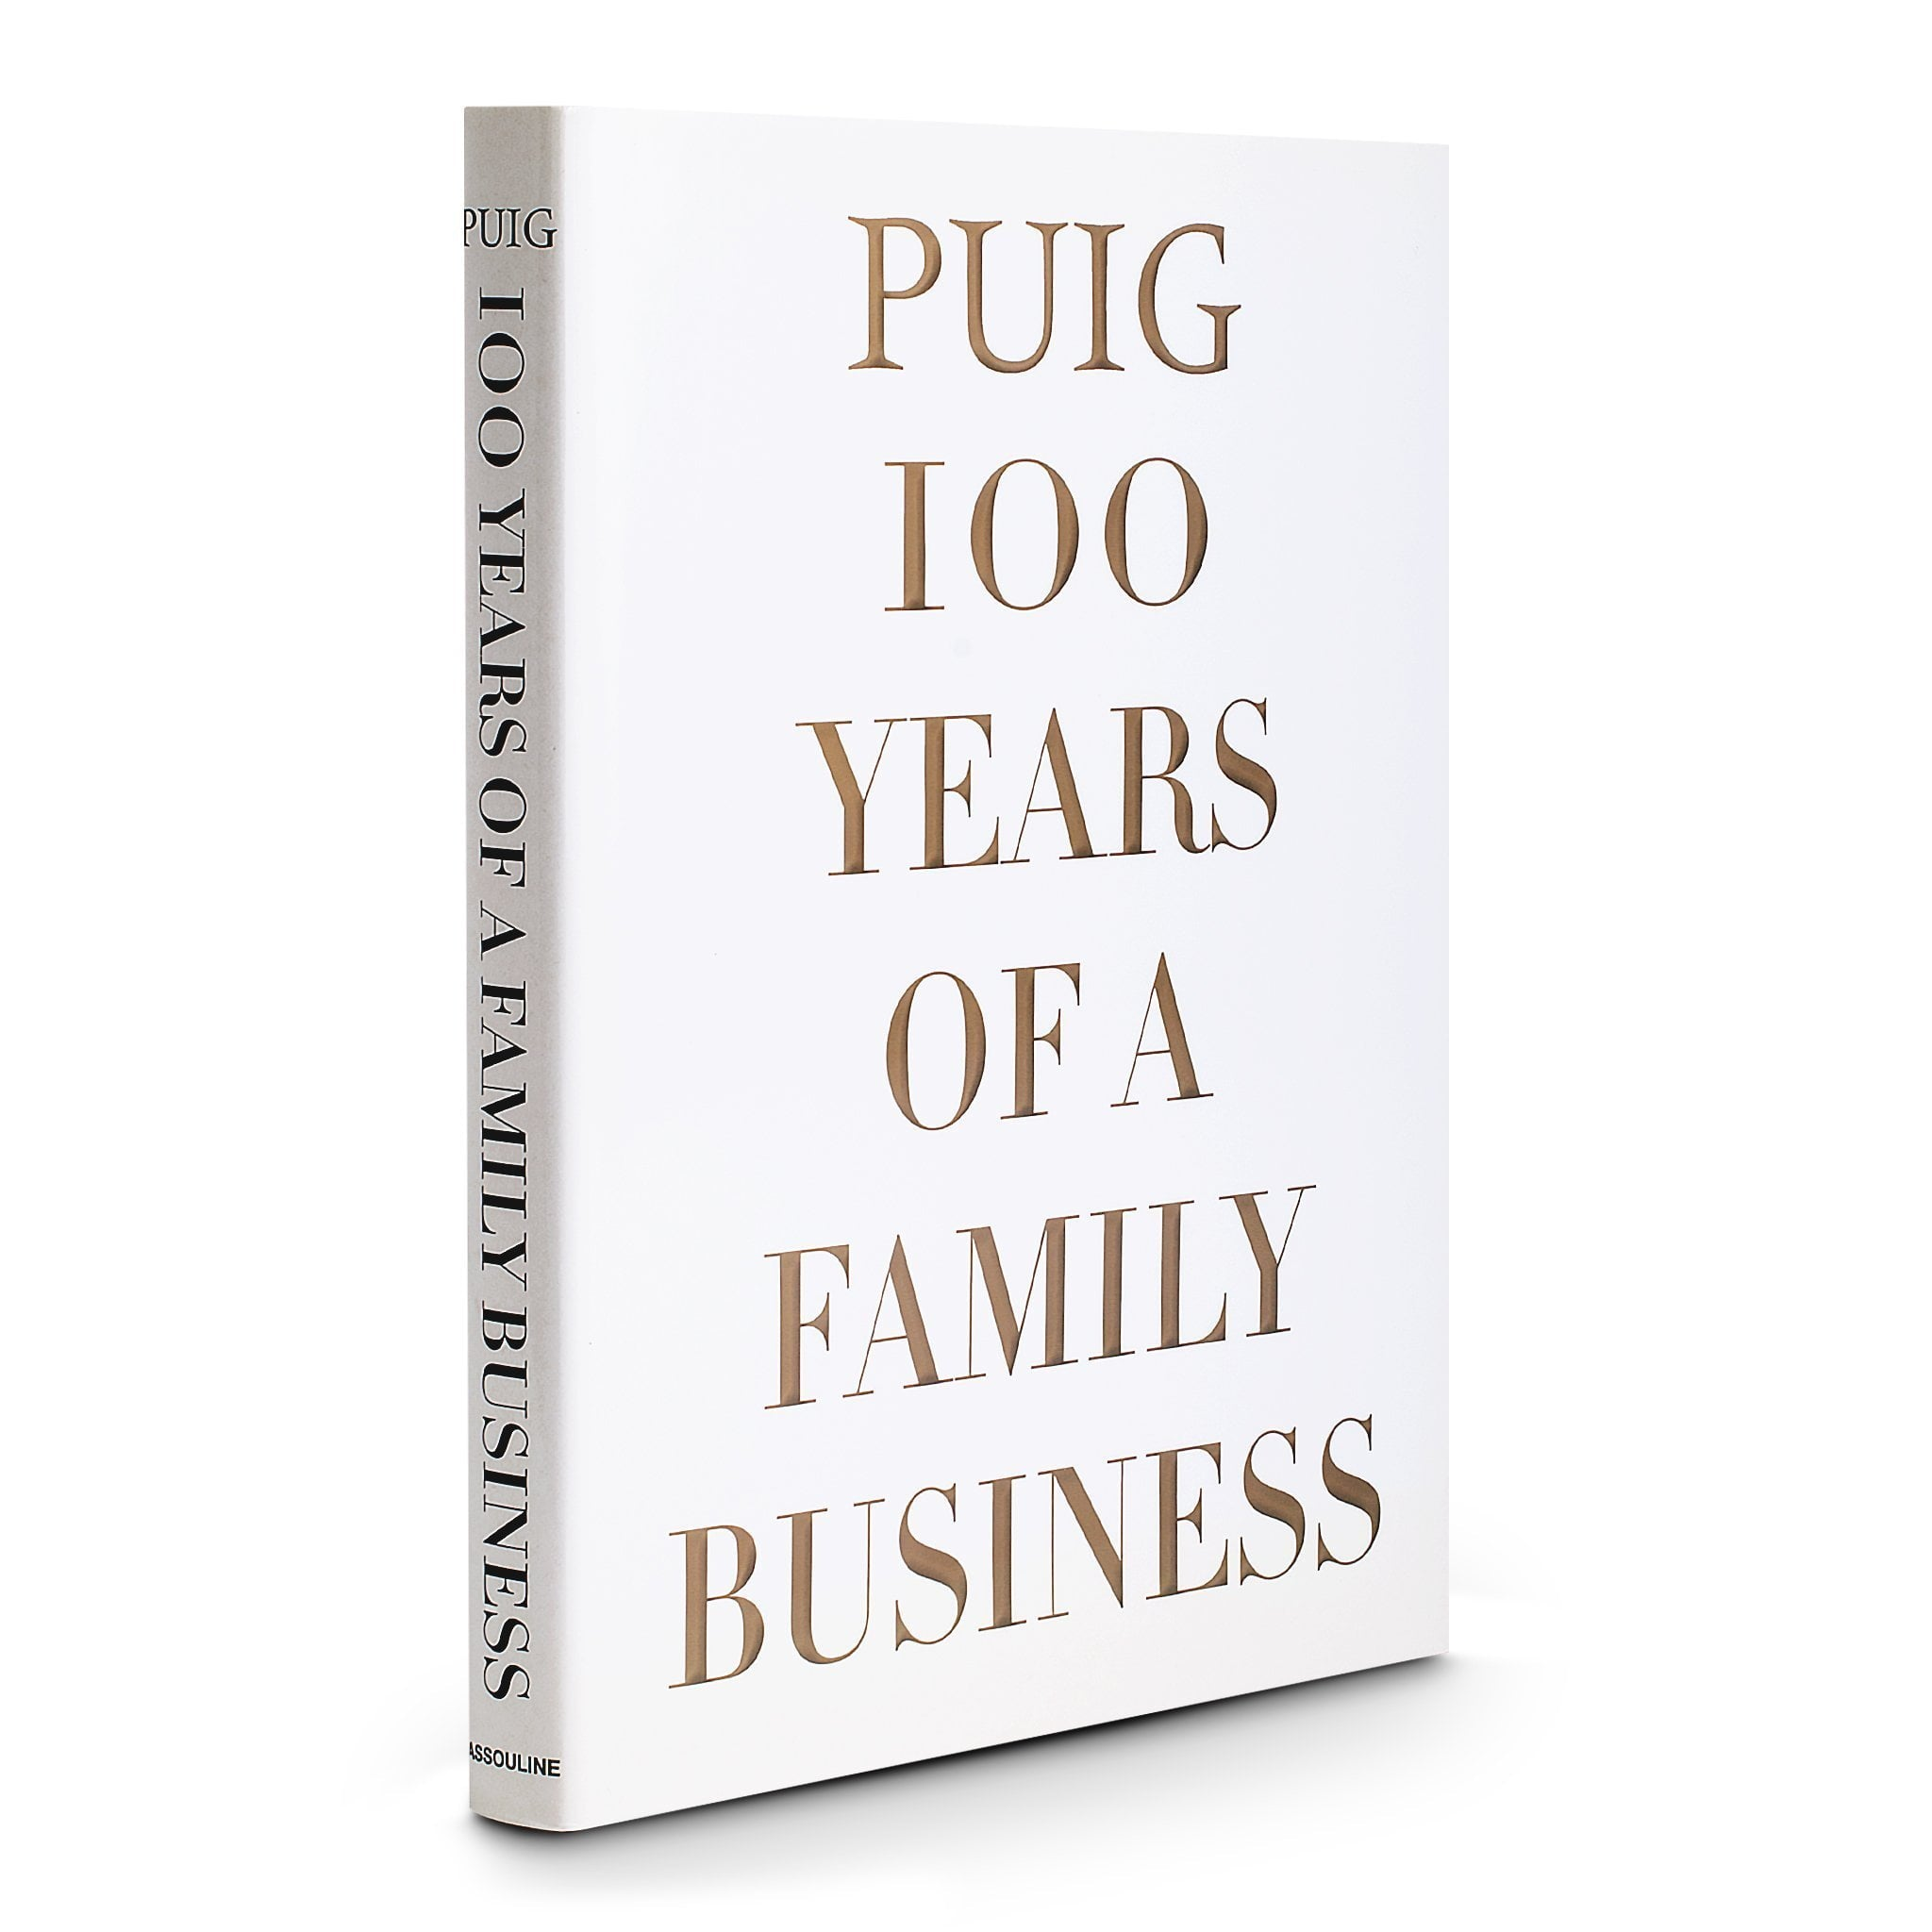 Puig, 100 Years of a Family Business - Assouline